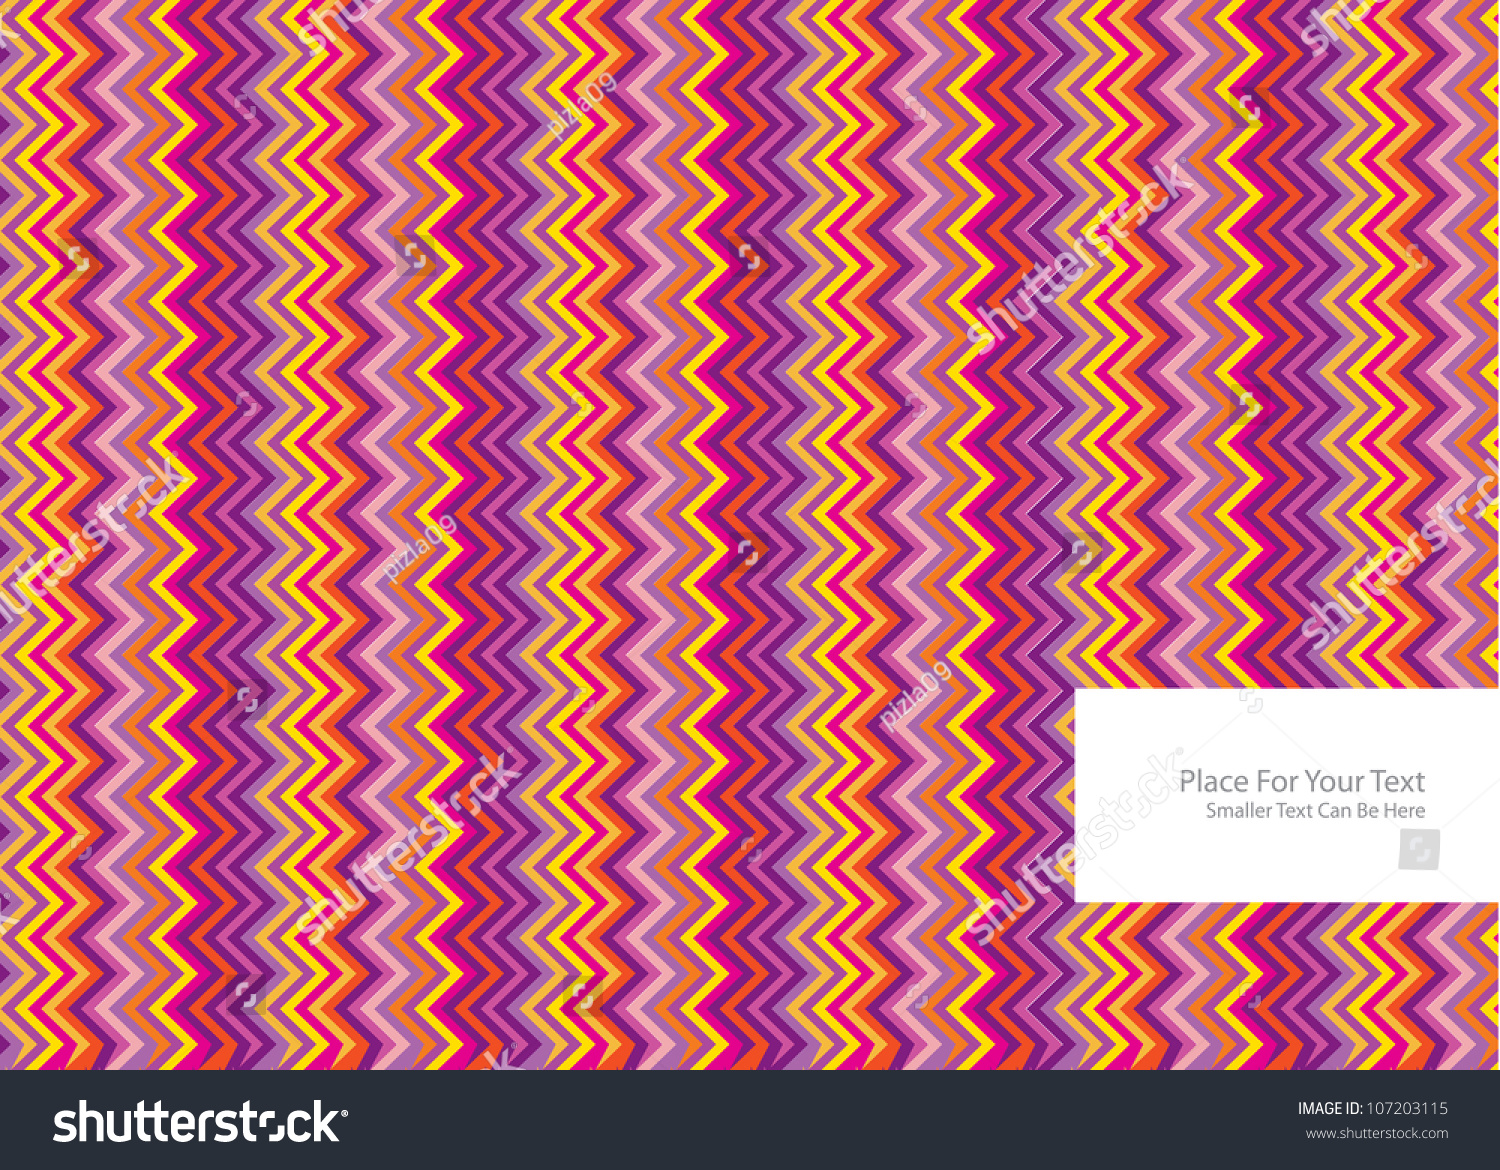 Color Abstract Vector Background Text Frame Stock Vector: Abstract Vector Background With Colorful Symmetrical Zig